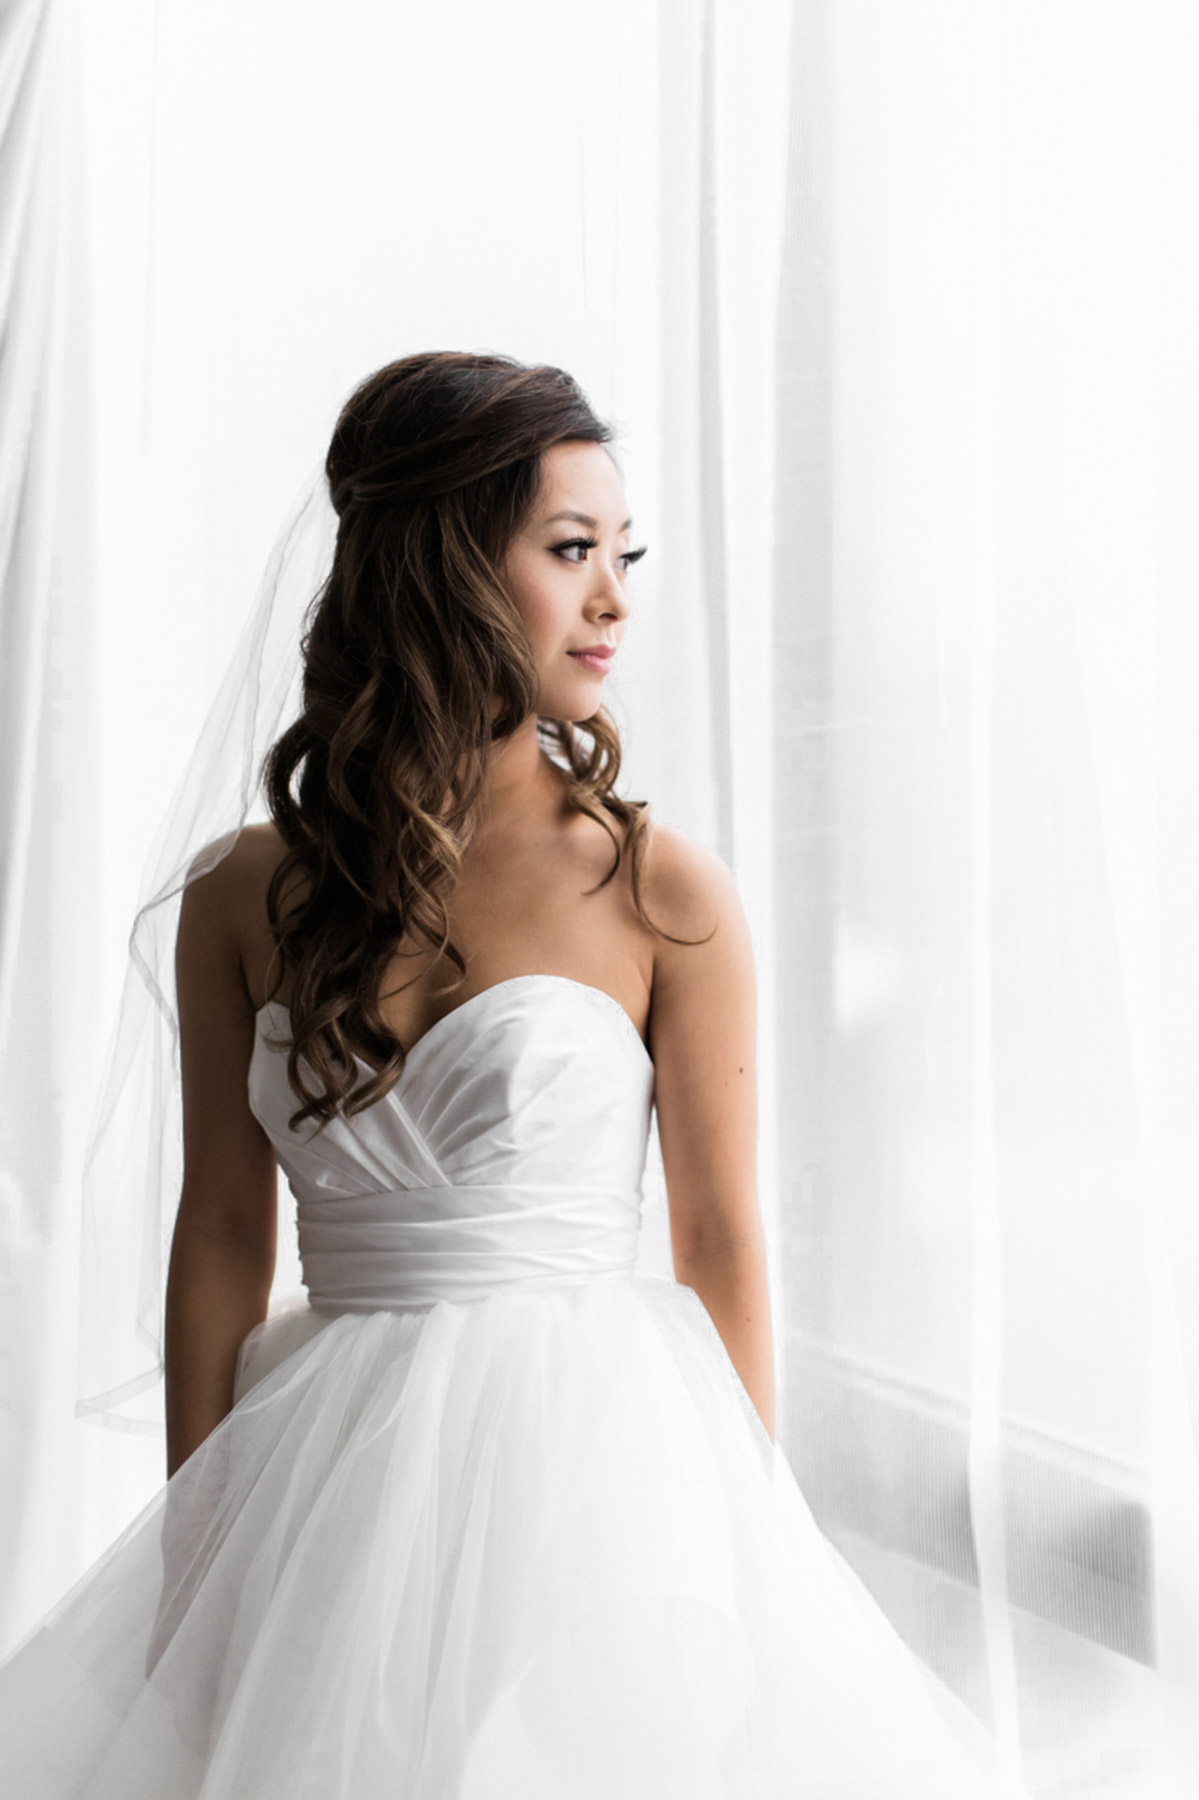 How To Photograph A Wedding Dress